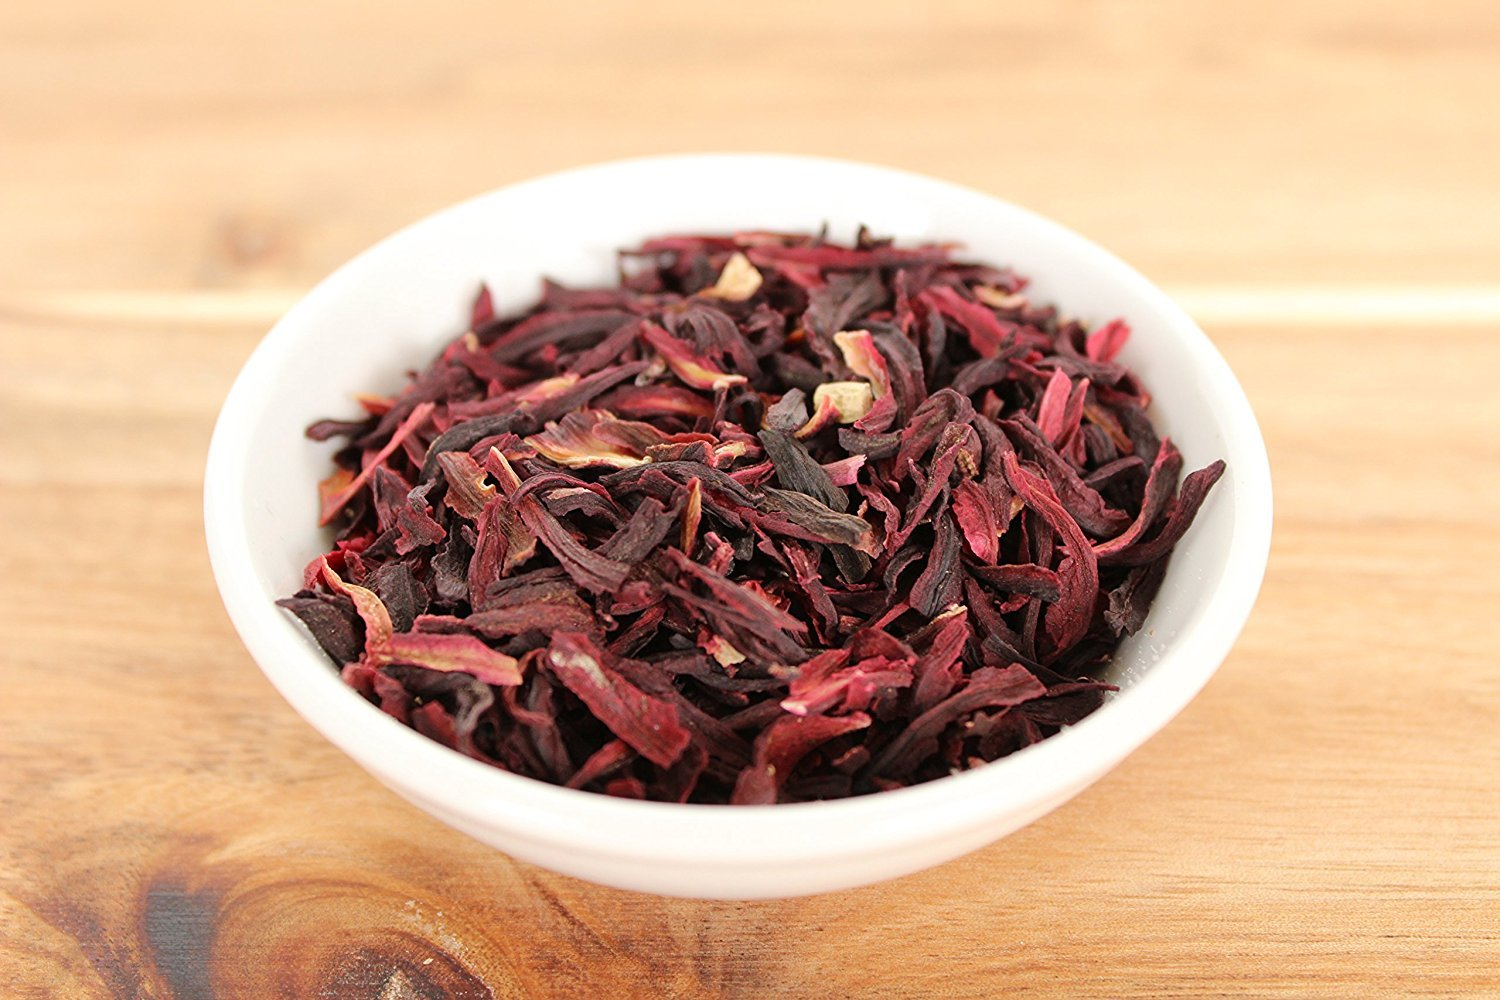 Hibiscus Flowers: USDA Organic, Batch Tested Gluten Free, Non-GMO